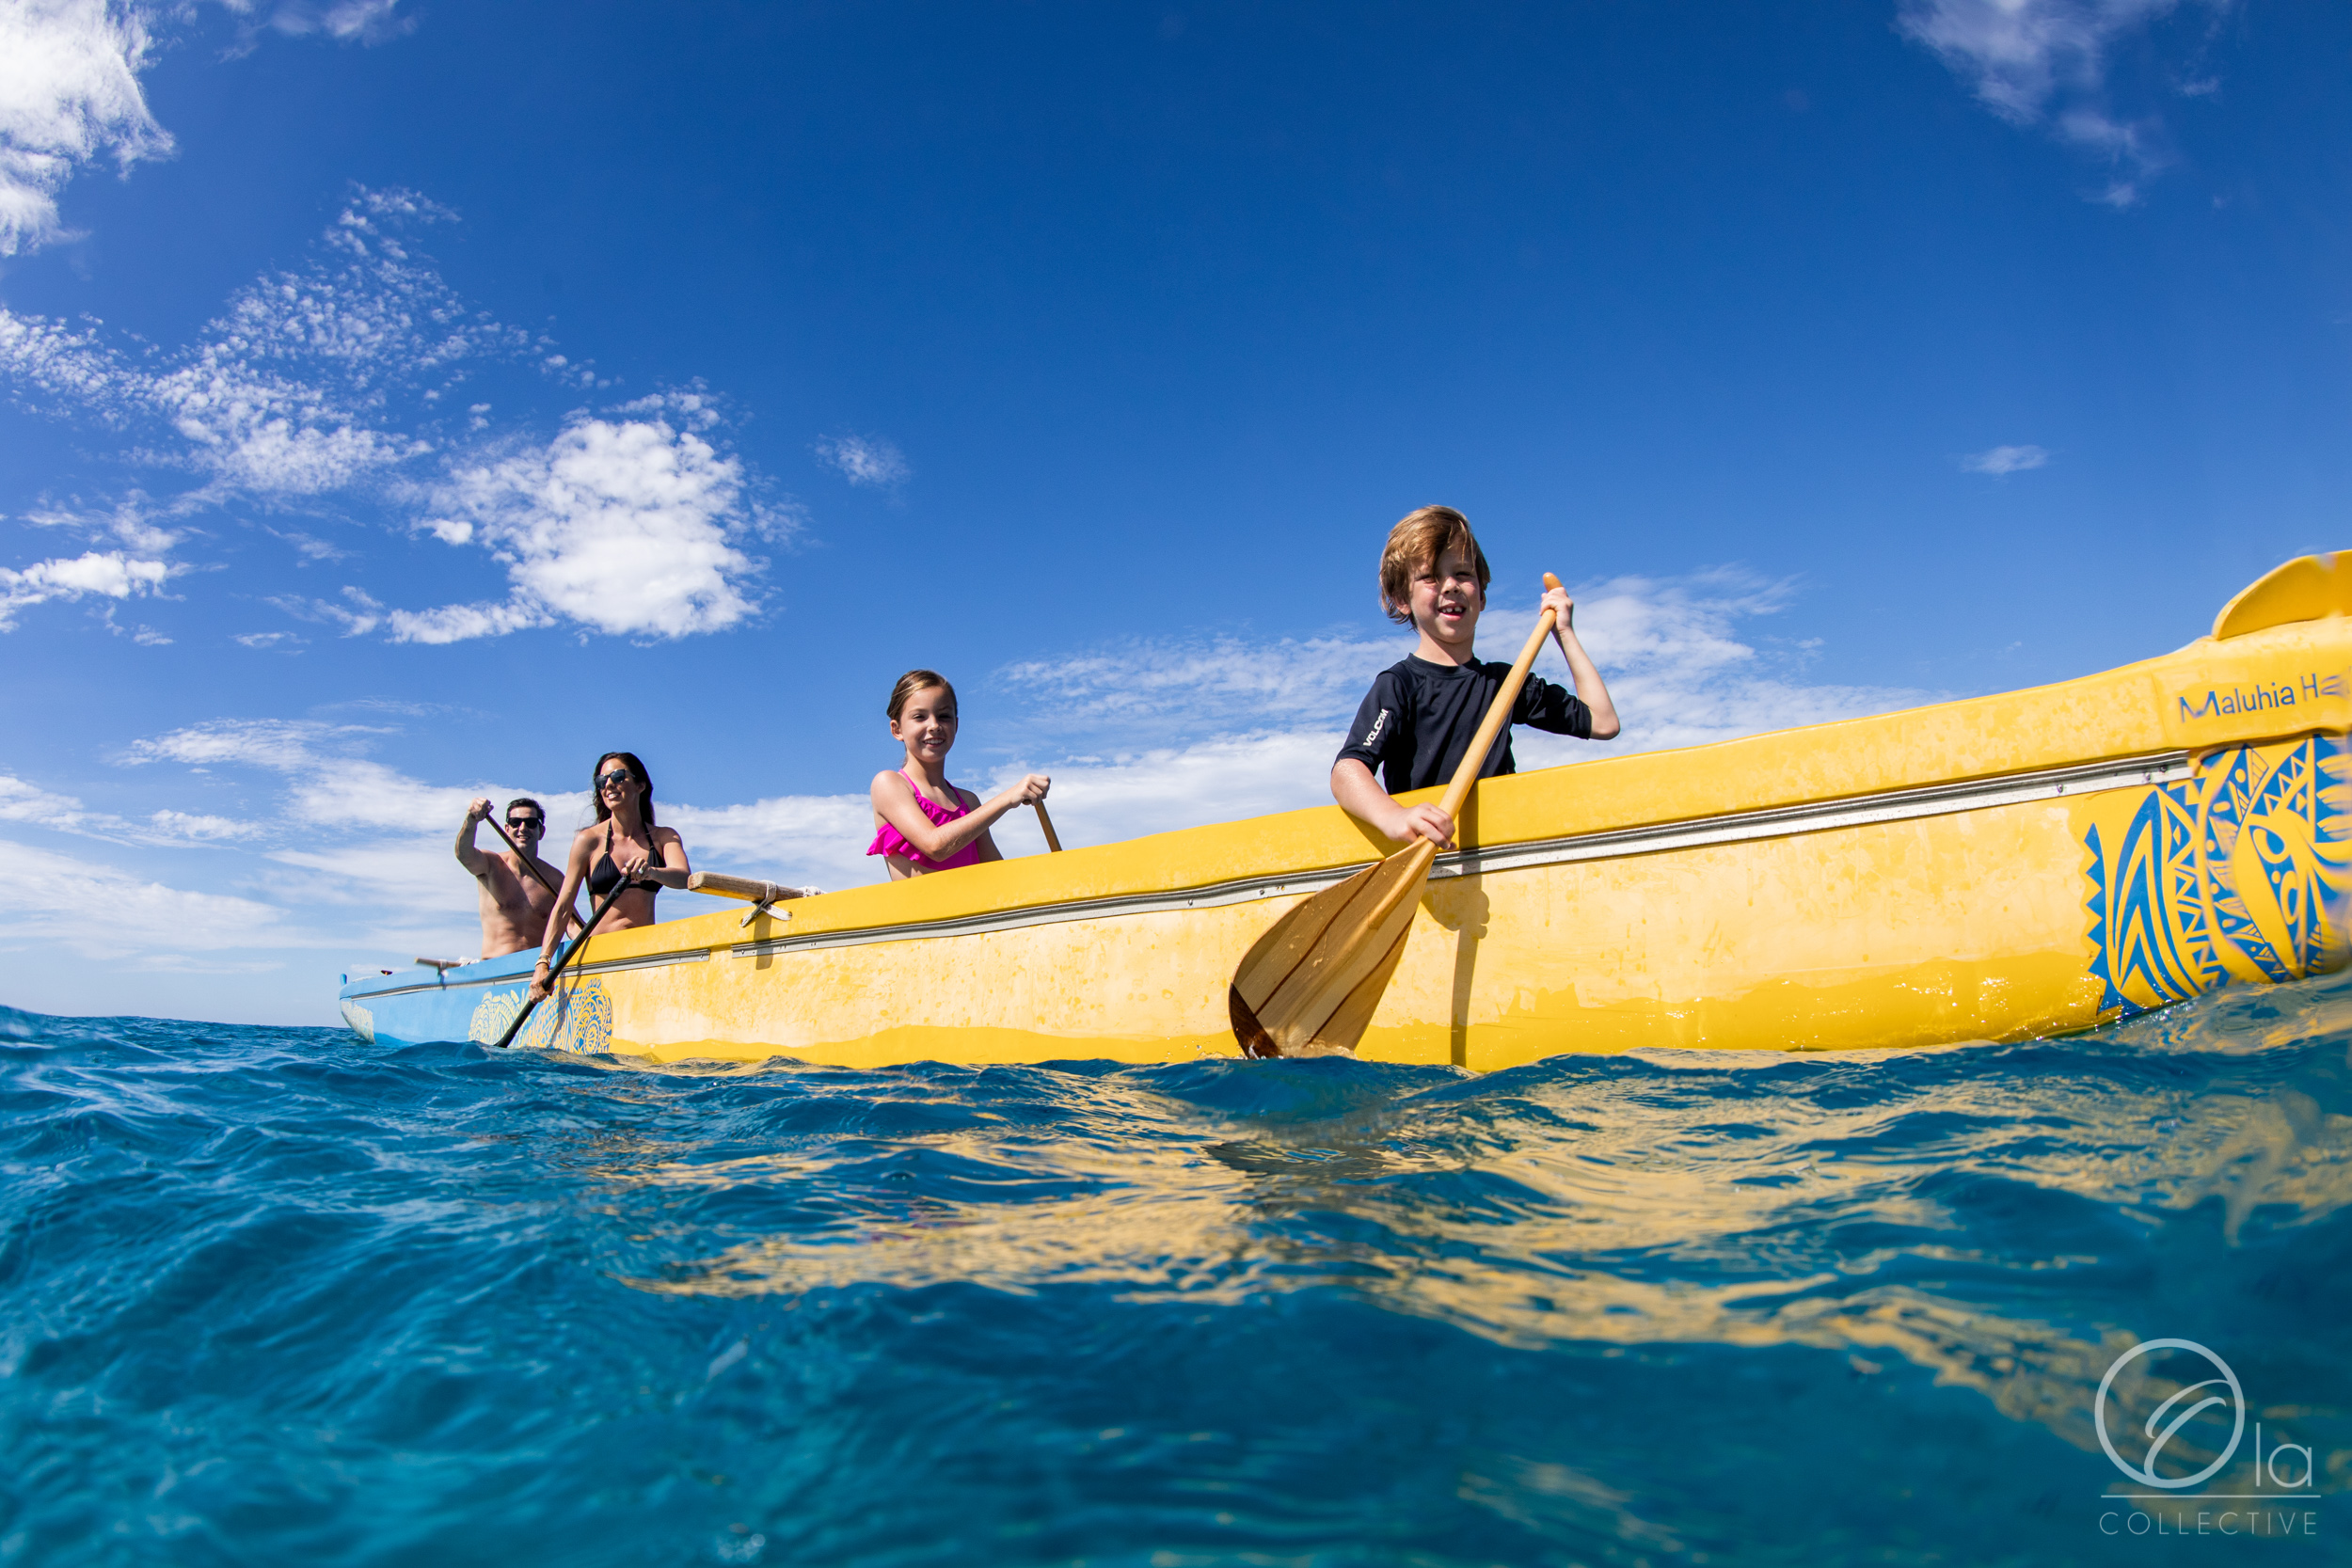 Their journey started with a paddle out to sea.